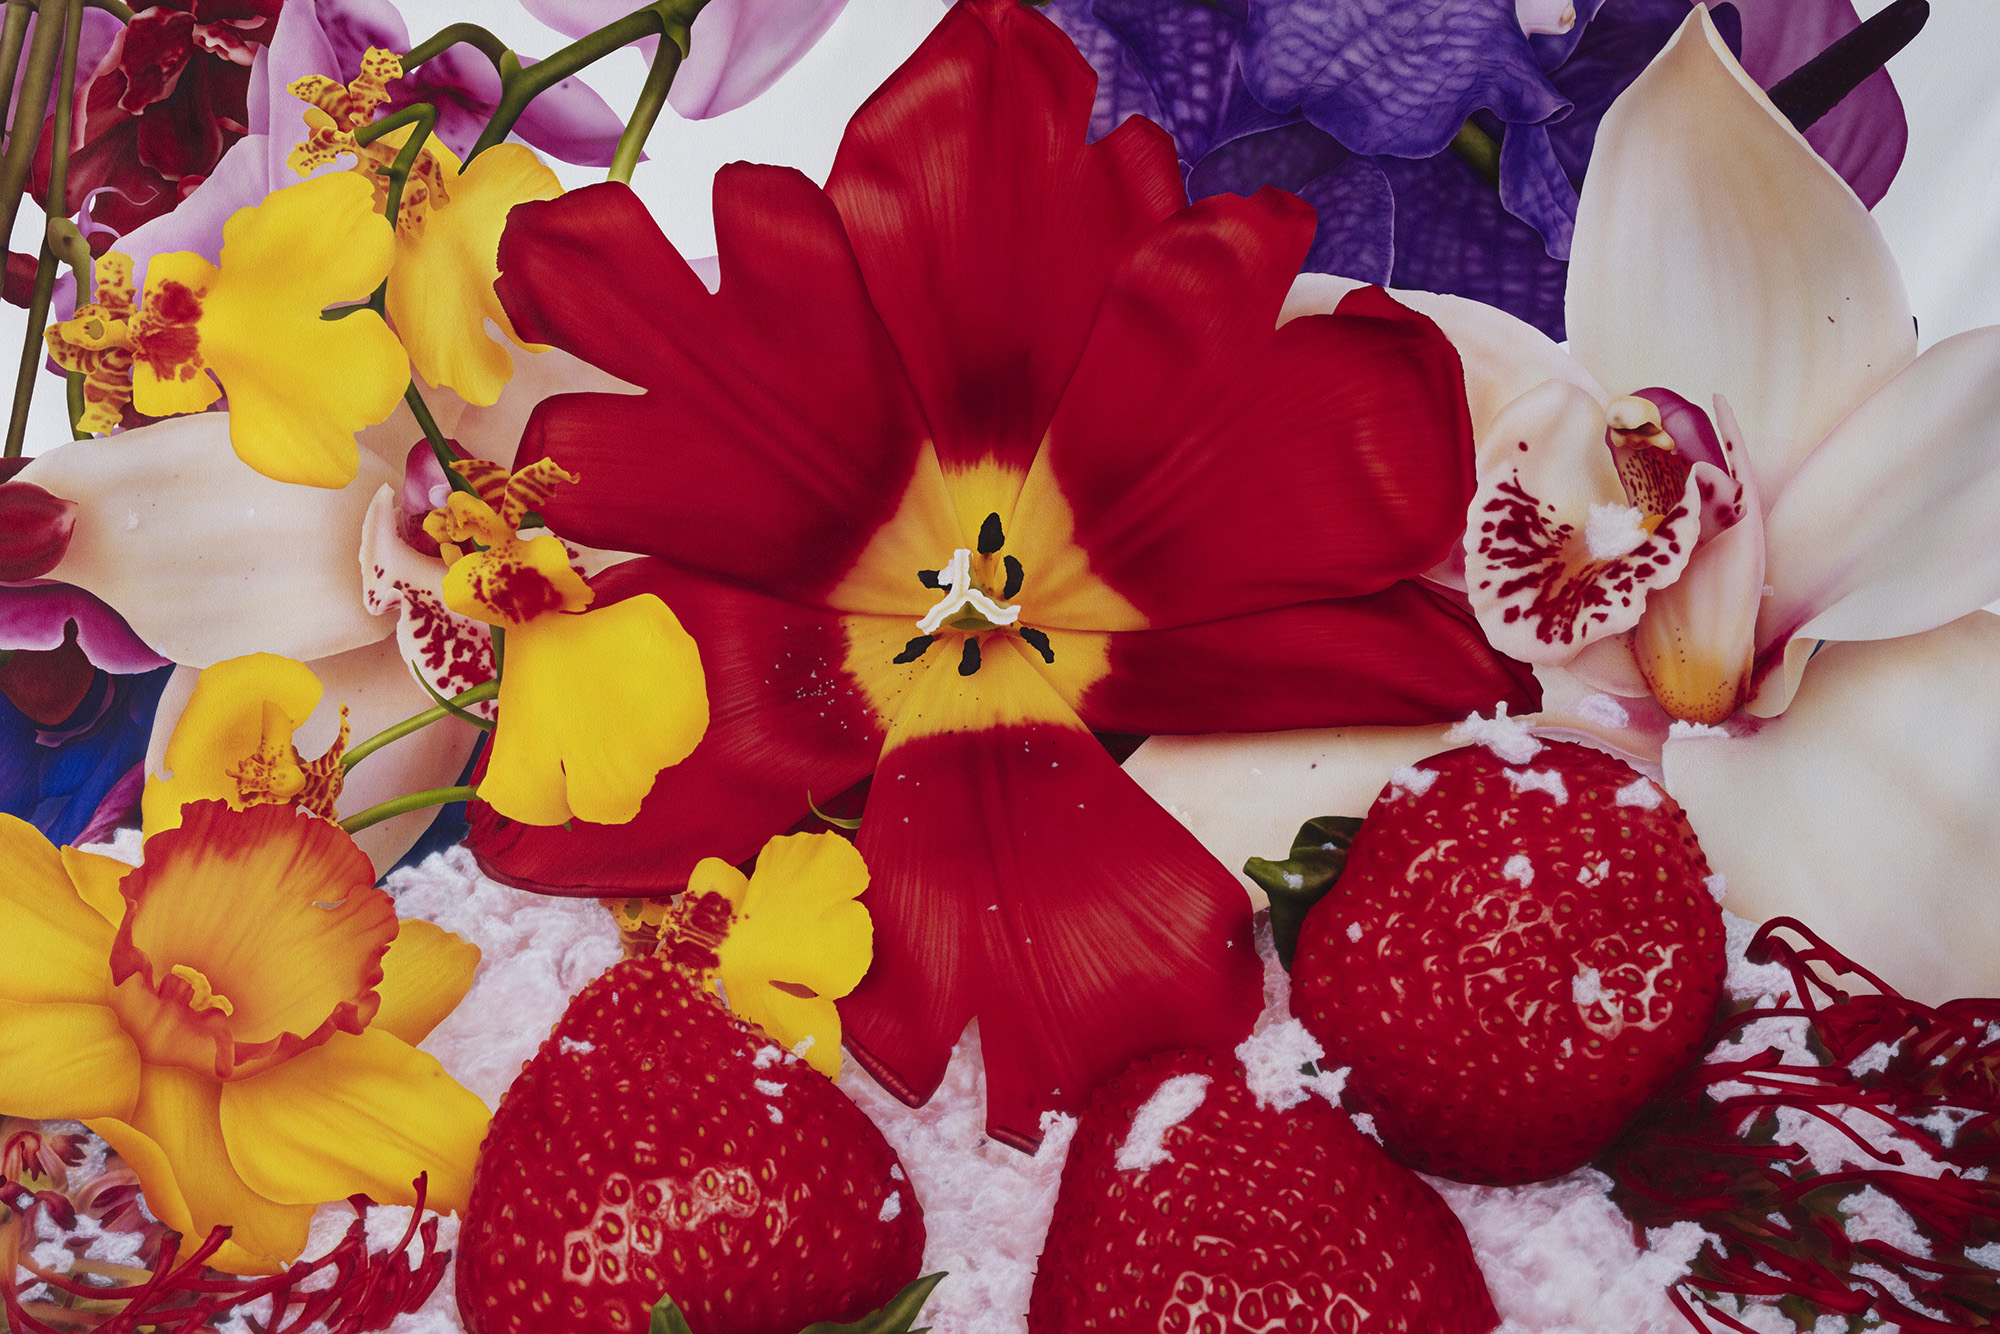 COMING UP: Flowers in art